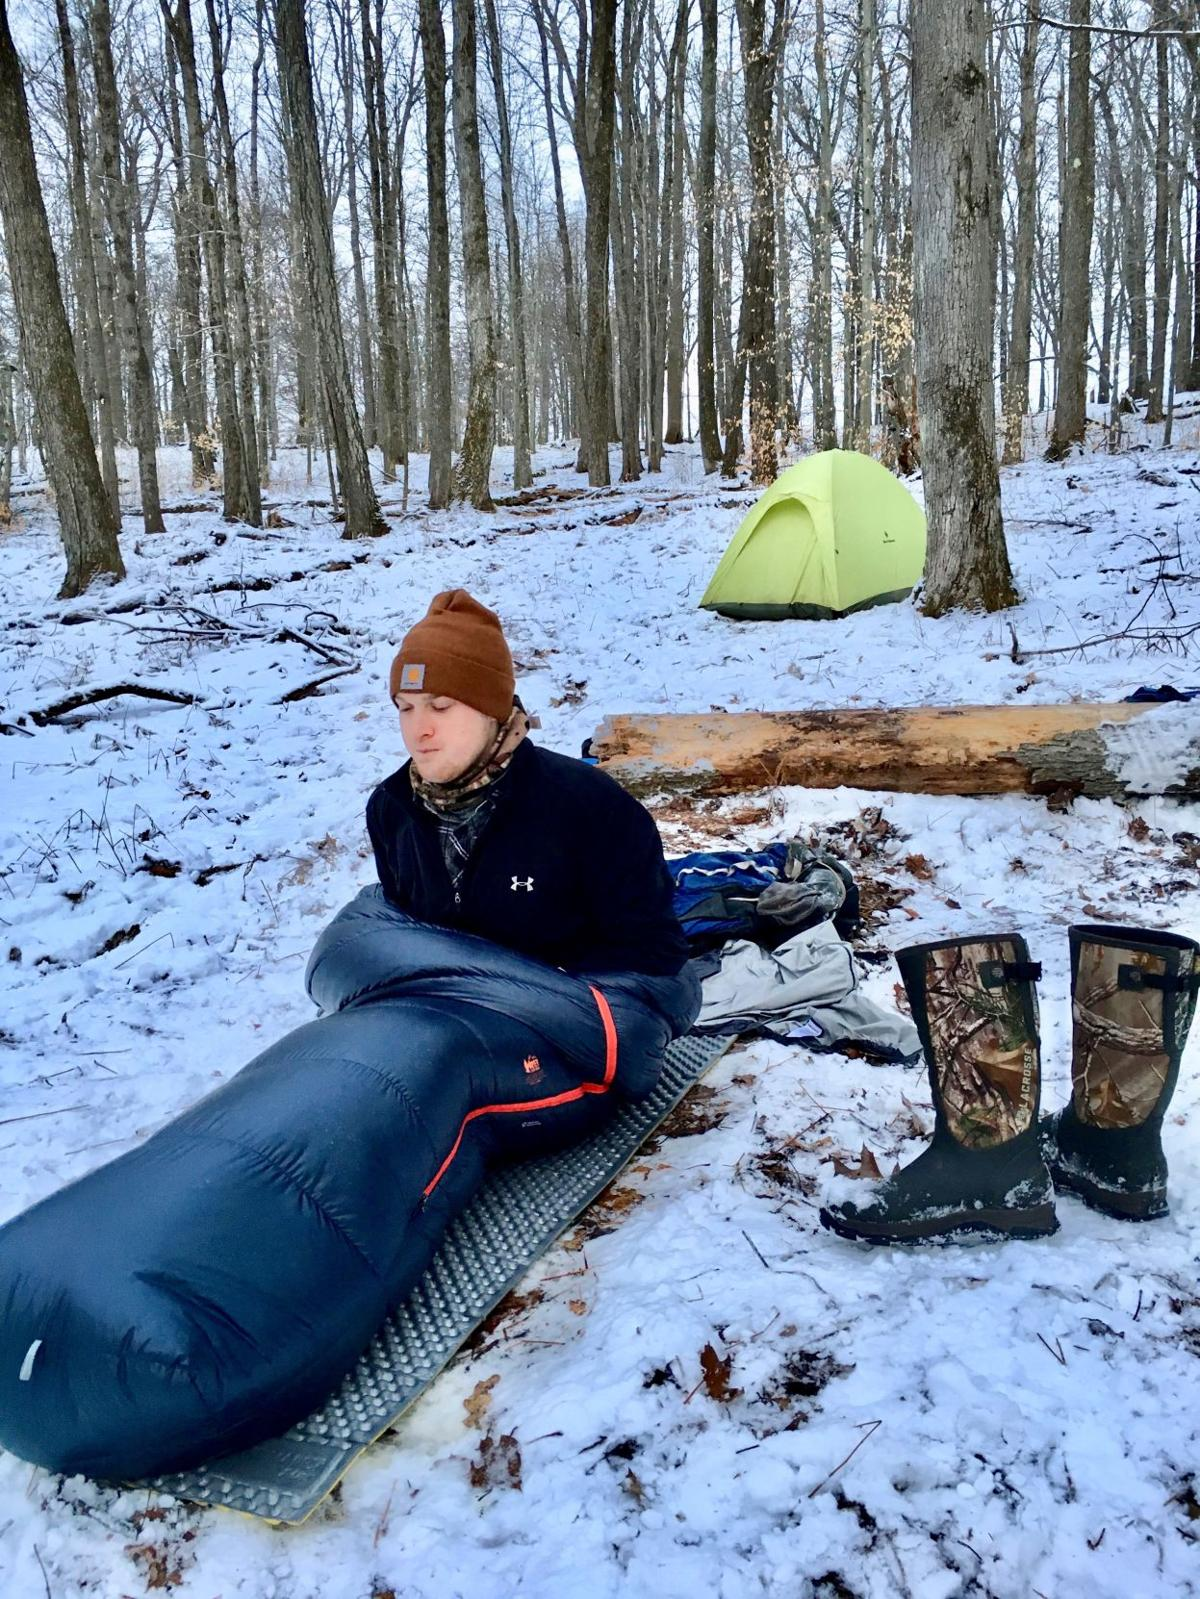 Winter camping in the most remote spot in Pennsylvania ...